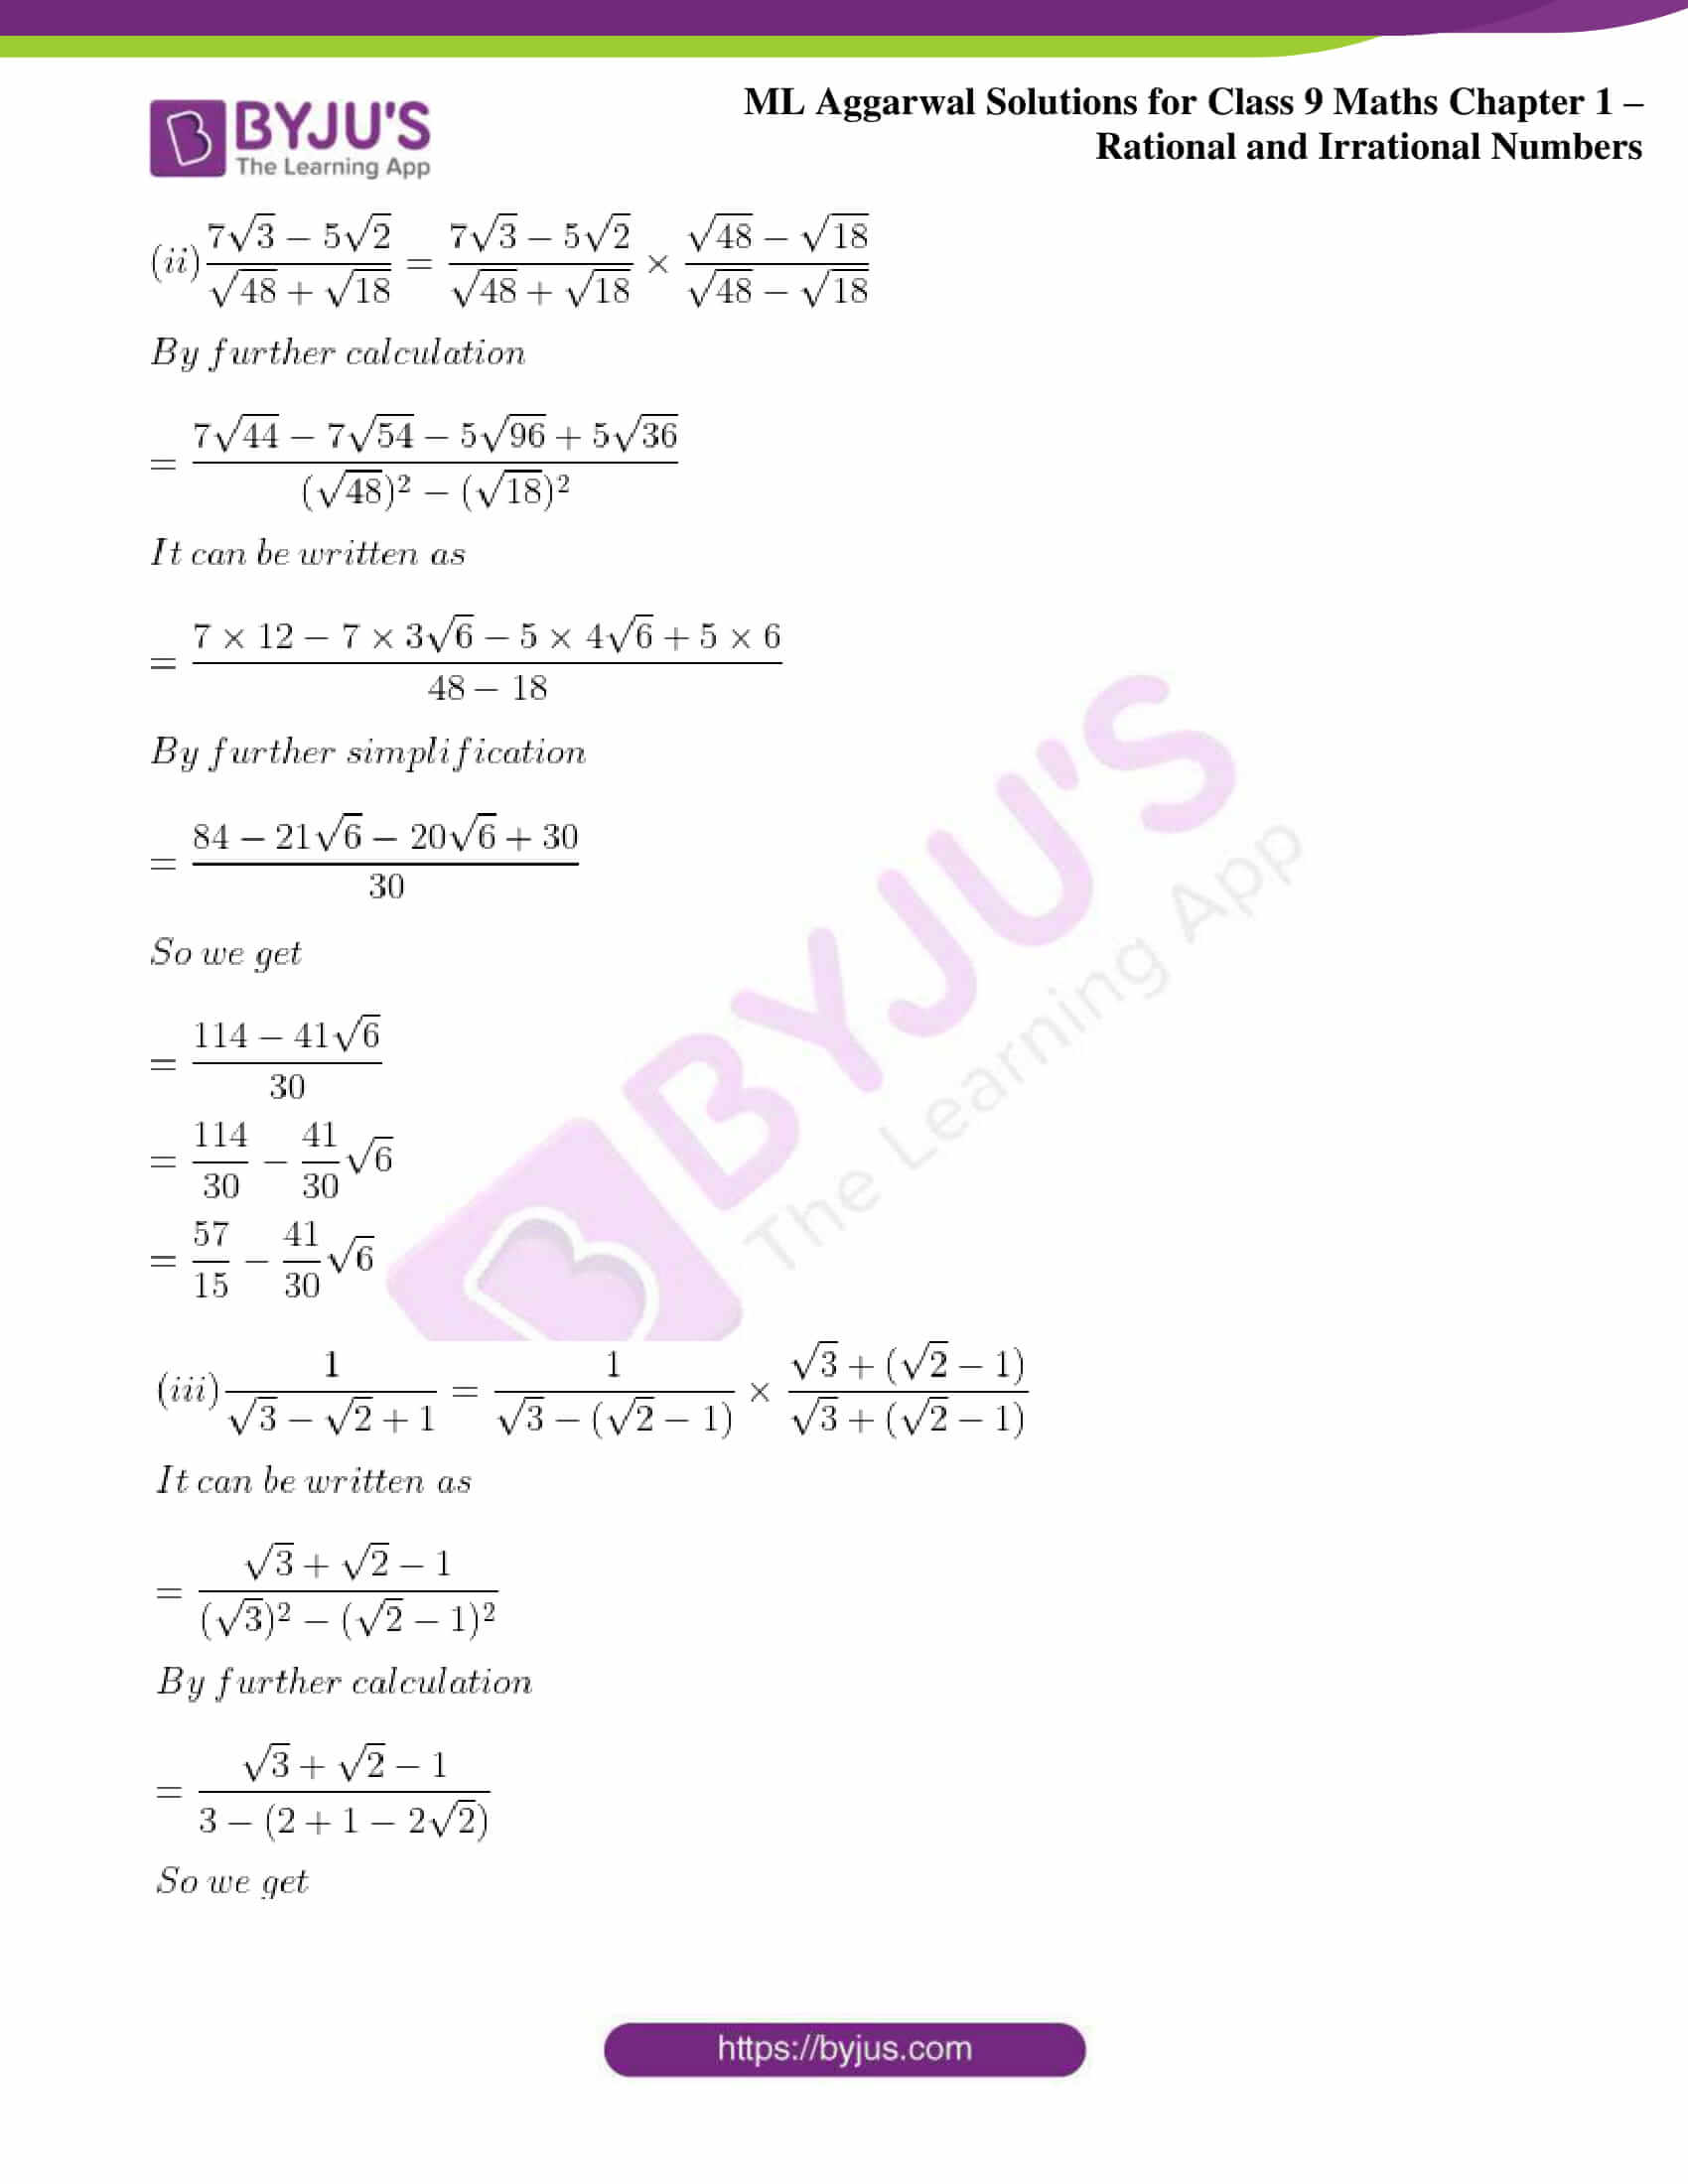 ml aggarwal solutions for class 9 maths chapter 1 71